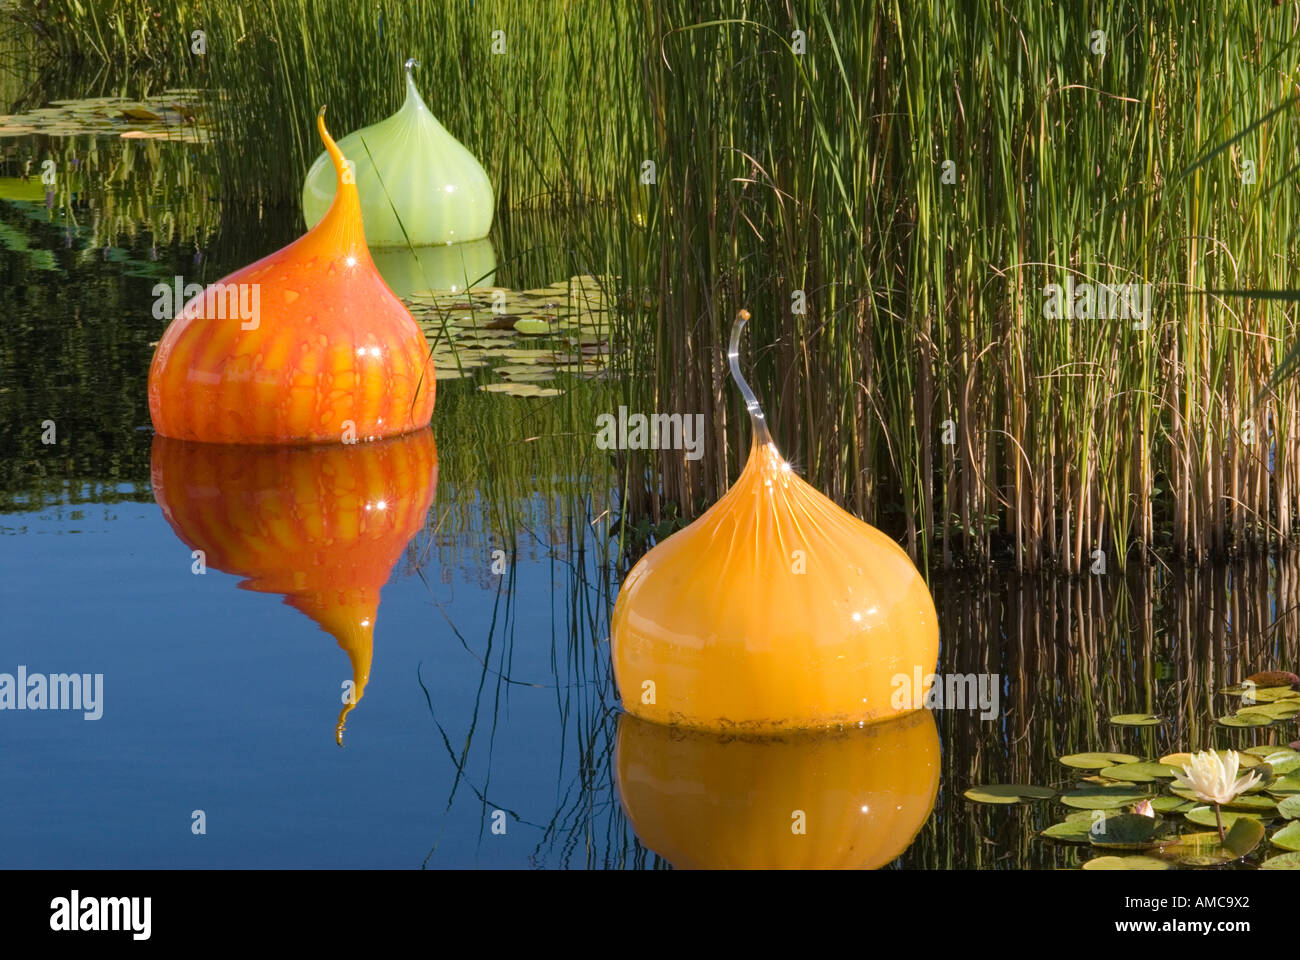 Walla Walla Glass Sculptures By Dale Chihuly At The New York Stock Photo 8696673 Alamy